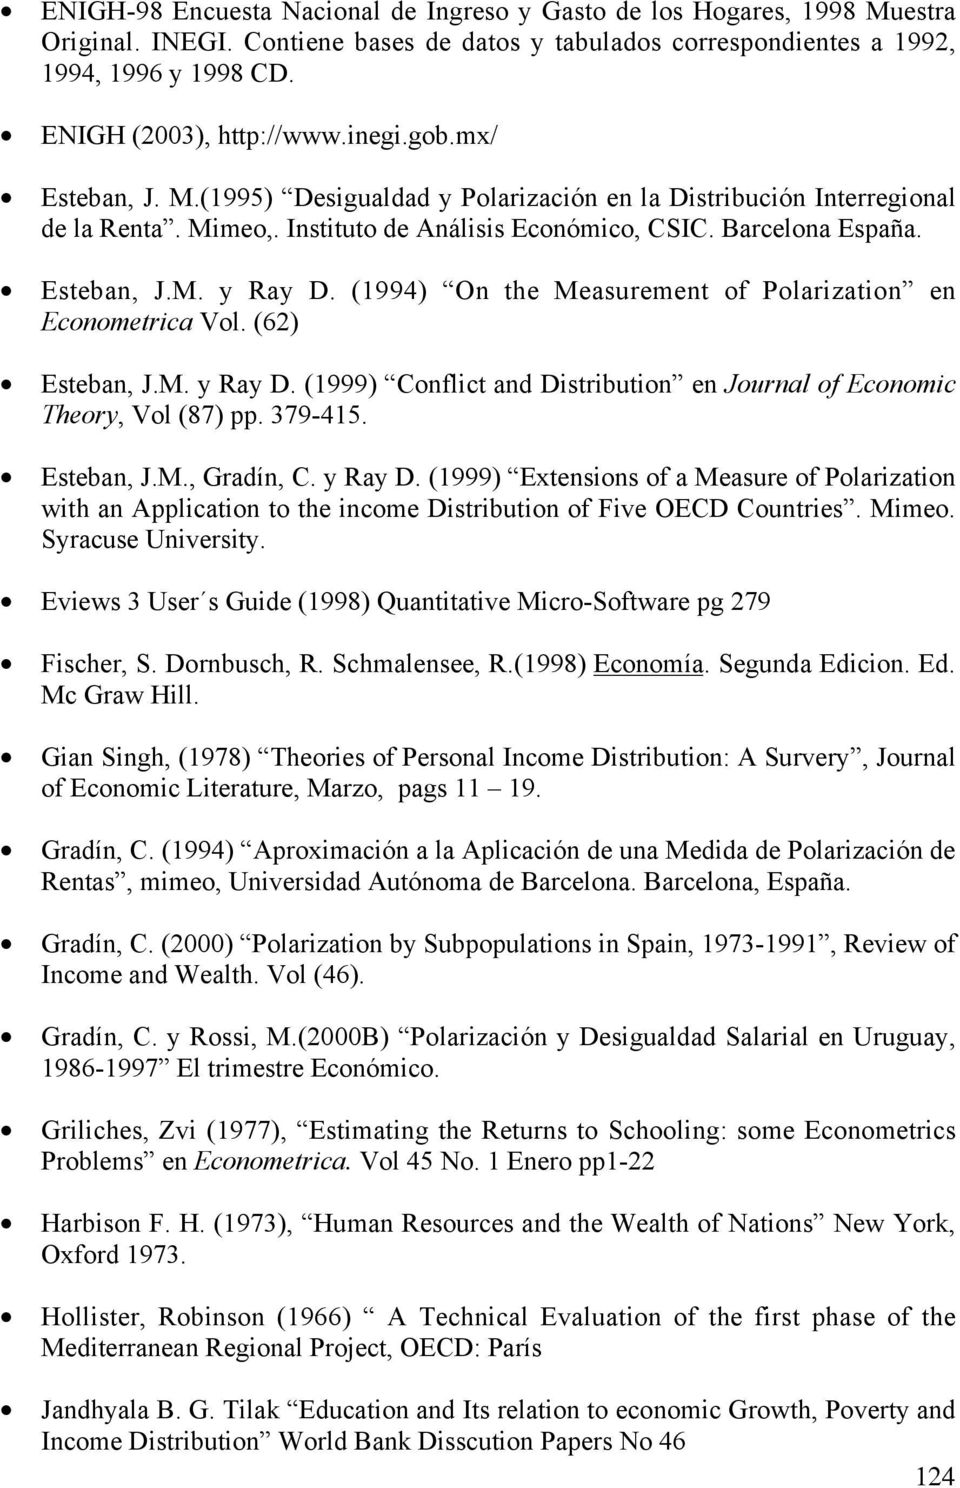 (1994) On the Measurement of Polarization en Econometrica Vol. (62) Esteban, J.M. y Ray D. (1999) Conflict and Distribution en Journal of Economic Theory, Vol (87) pp. 379-415. Esteban, J.M., Gradín, C.